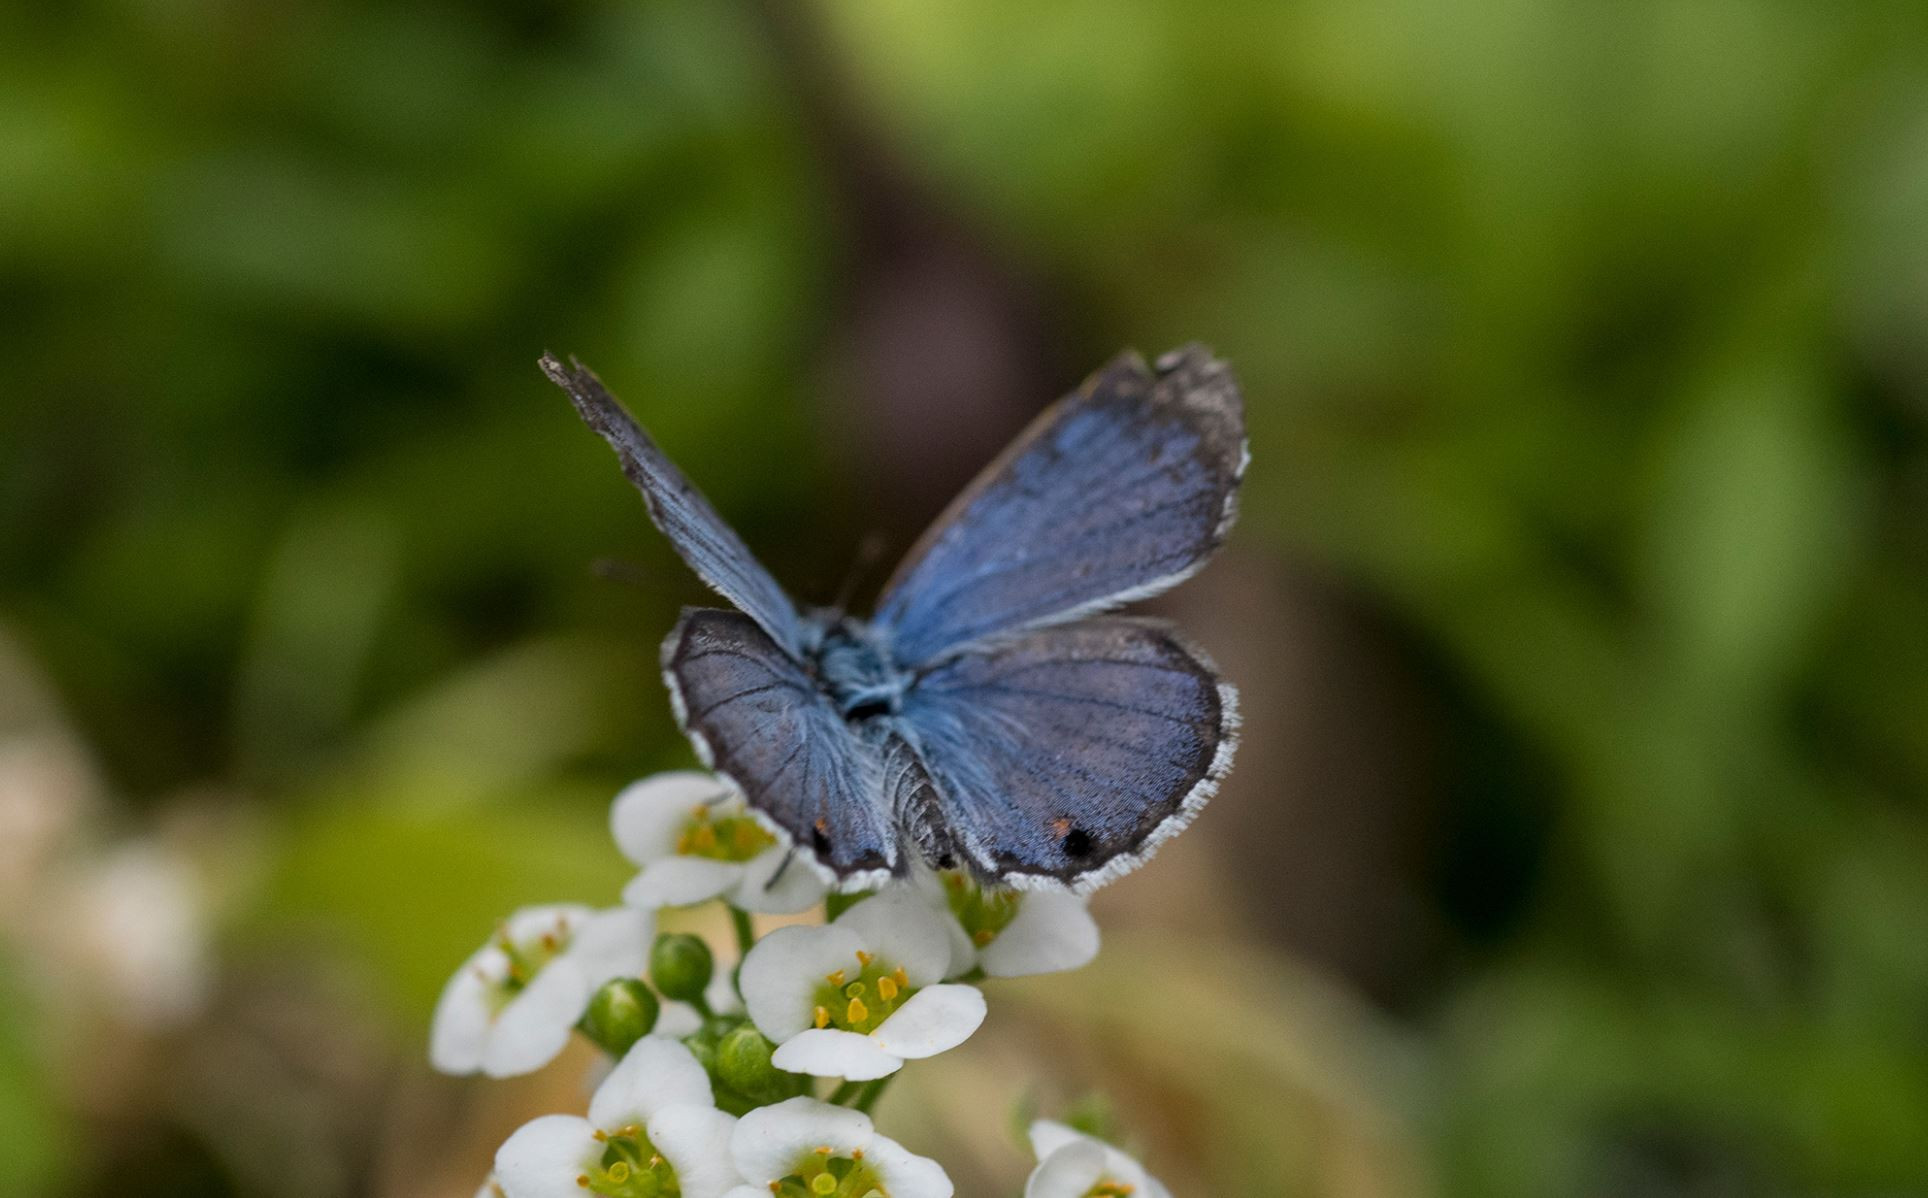 Scientists are raising Miami blue butterflies in captivity and reintroducing them in south Florida. - Image Credit:  Jeff Gage/Florida Museum of Natural History ,  CC BY-ND